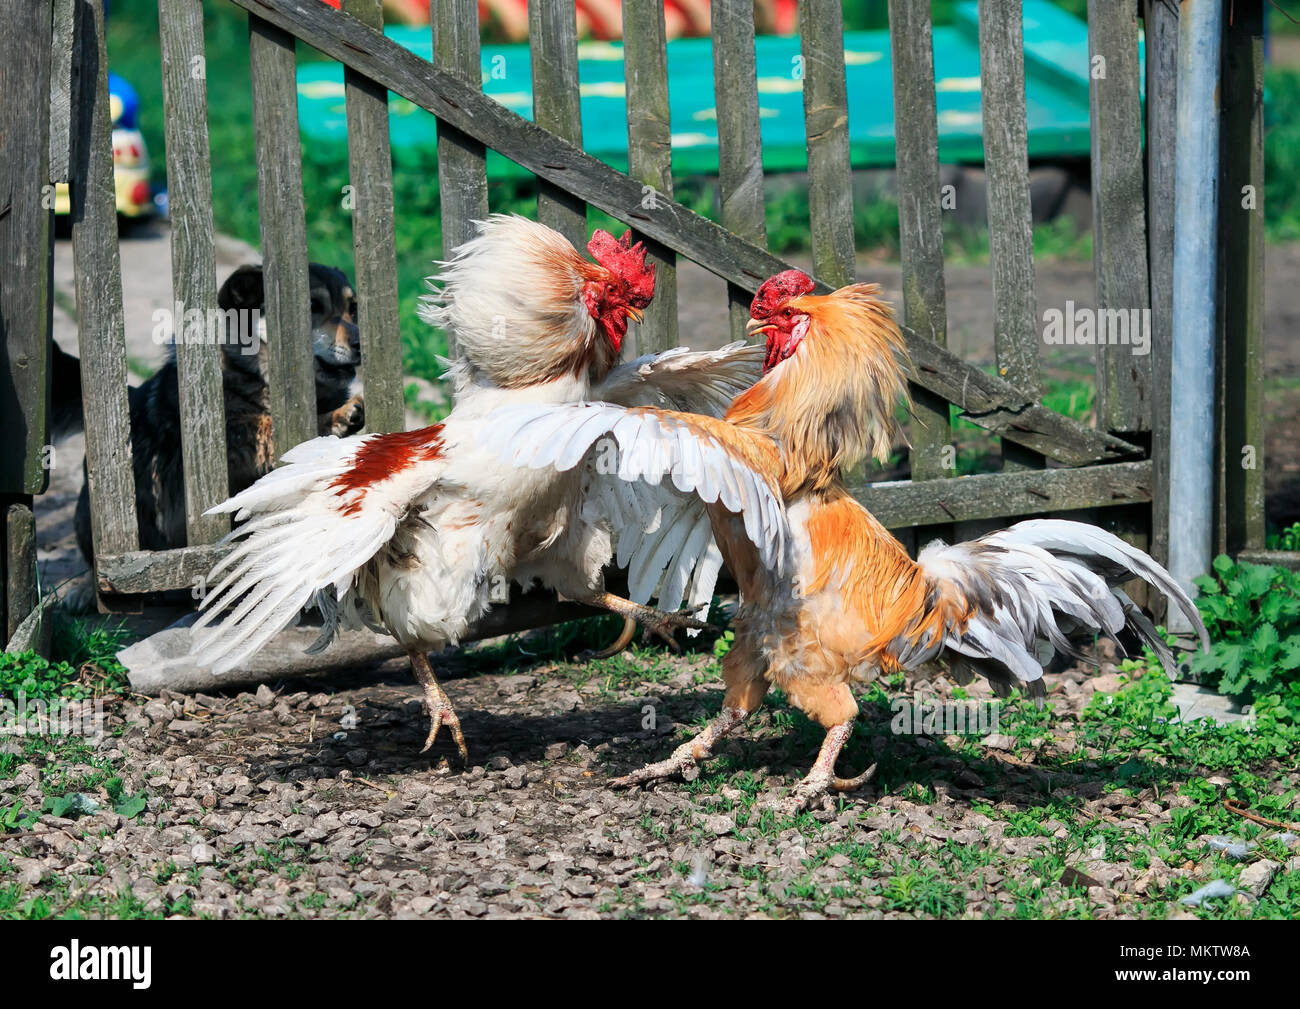 cock fighting in middle ages